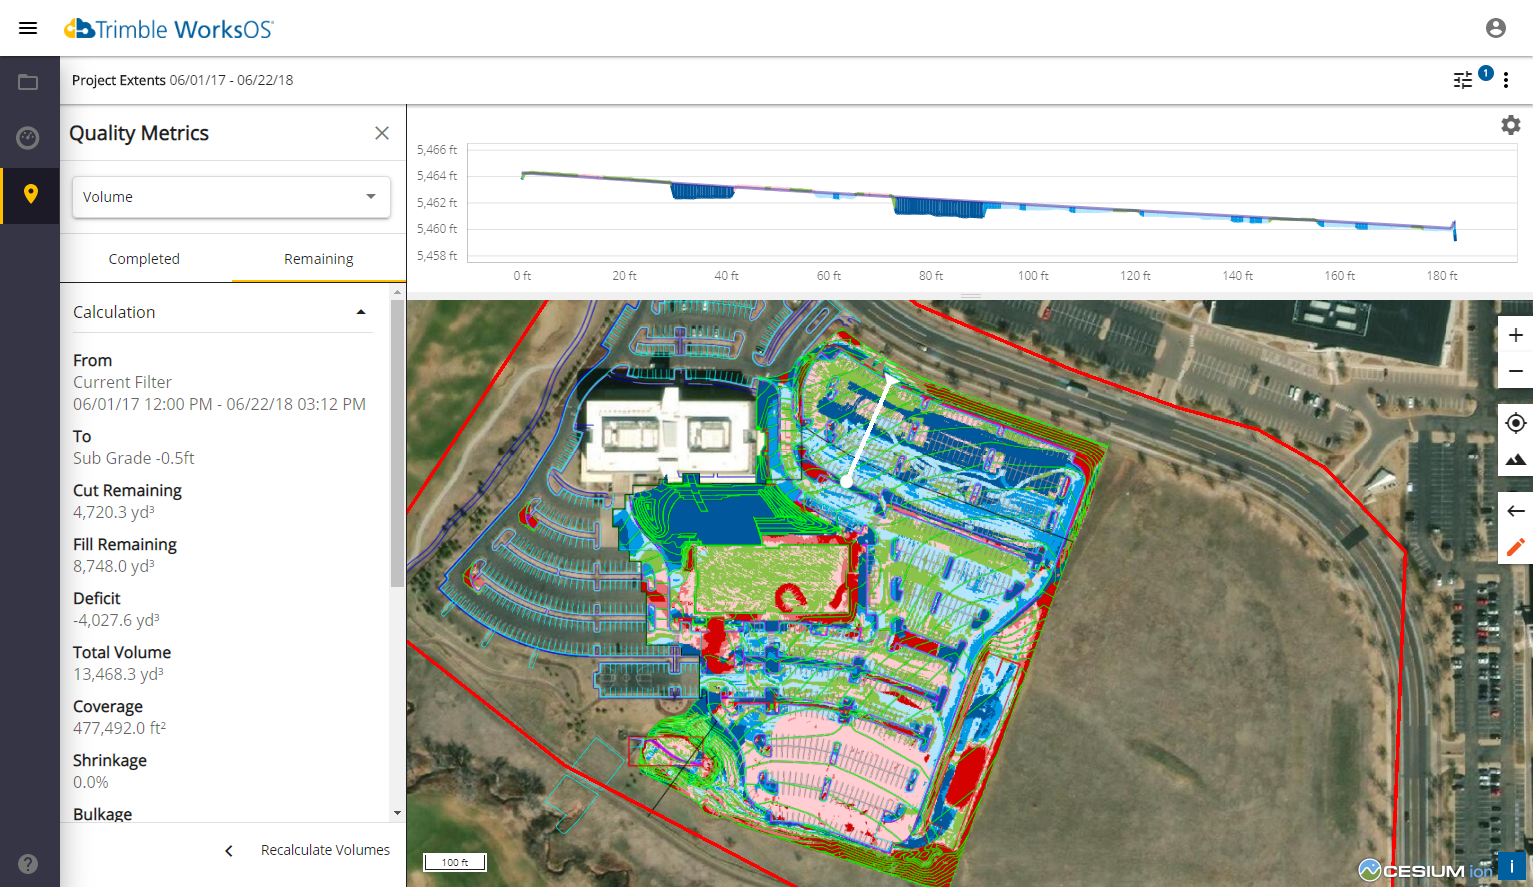 Trimble Construction Software, WorksOS, In-progress cut-fill and grade monitoring